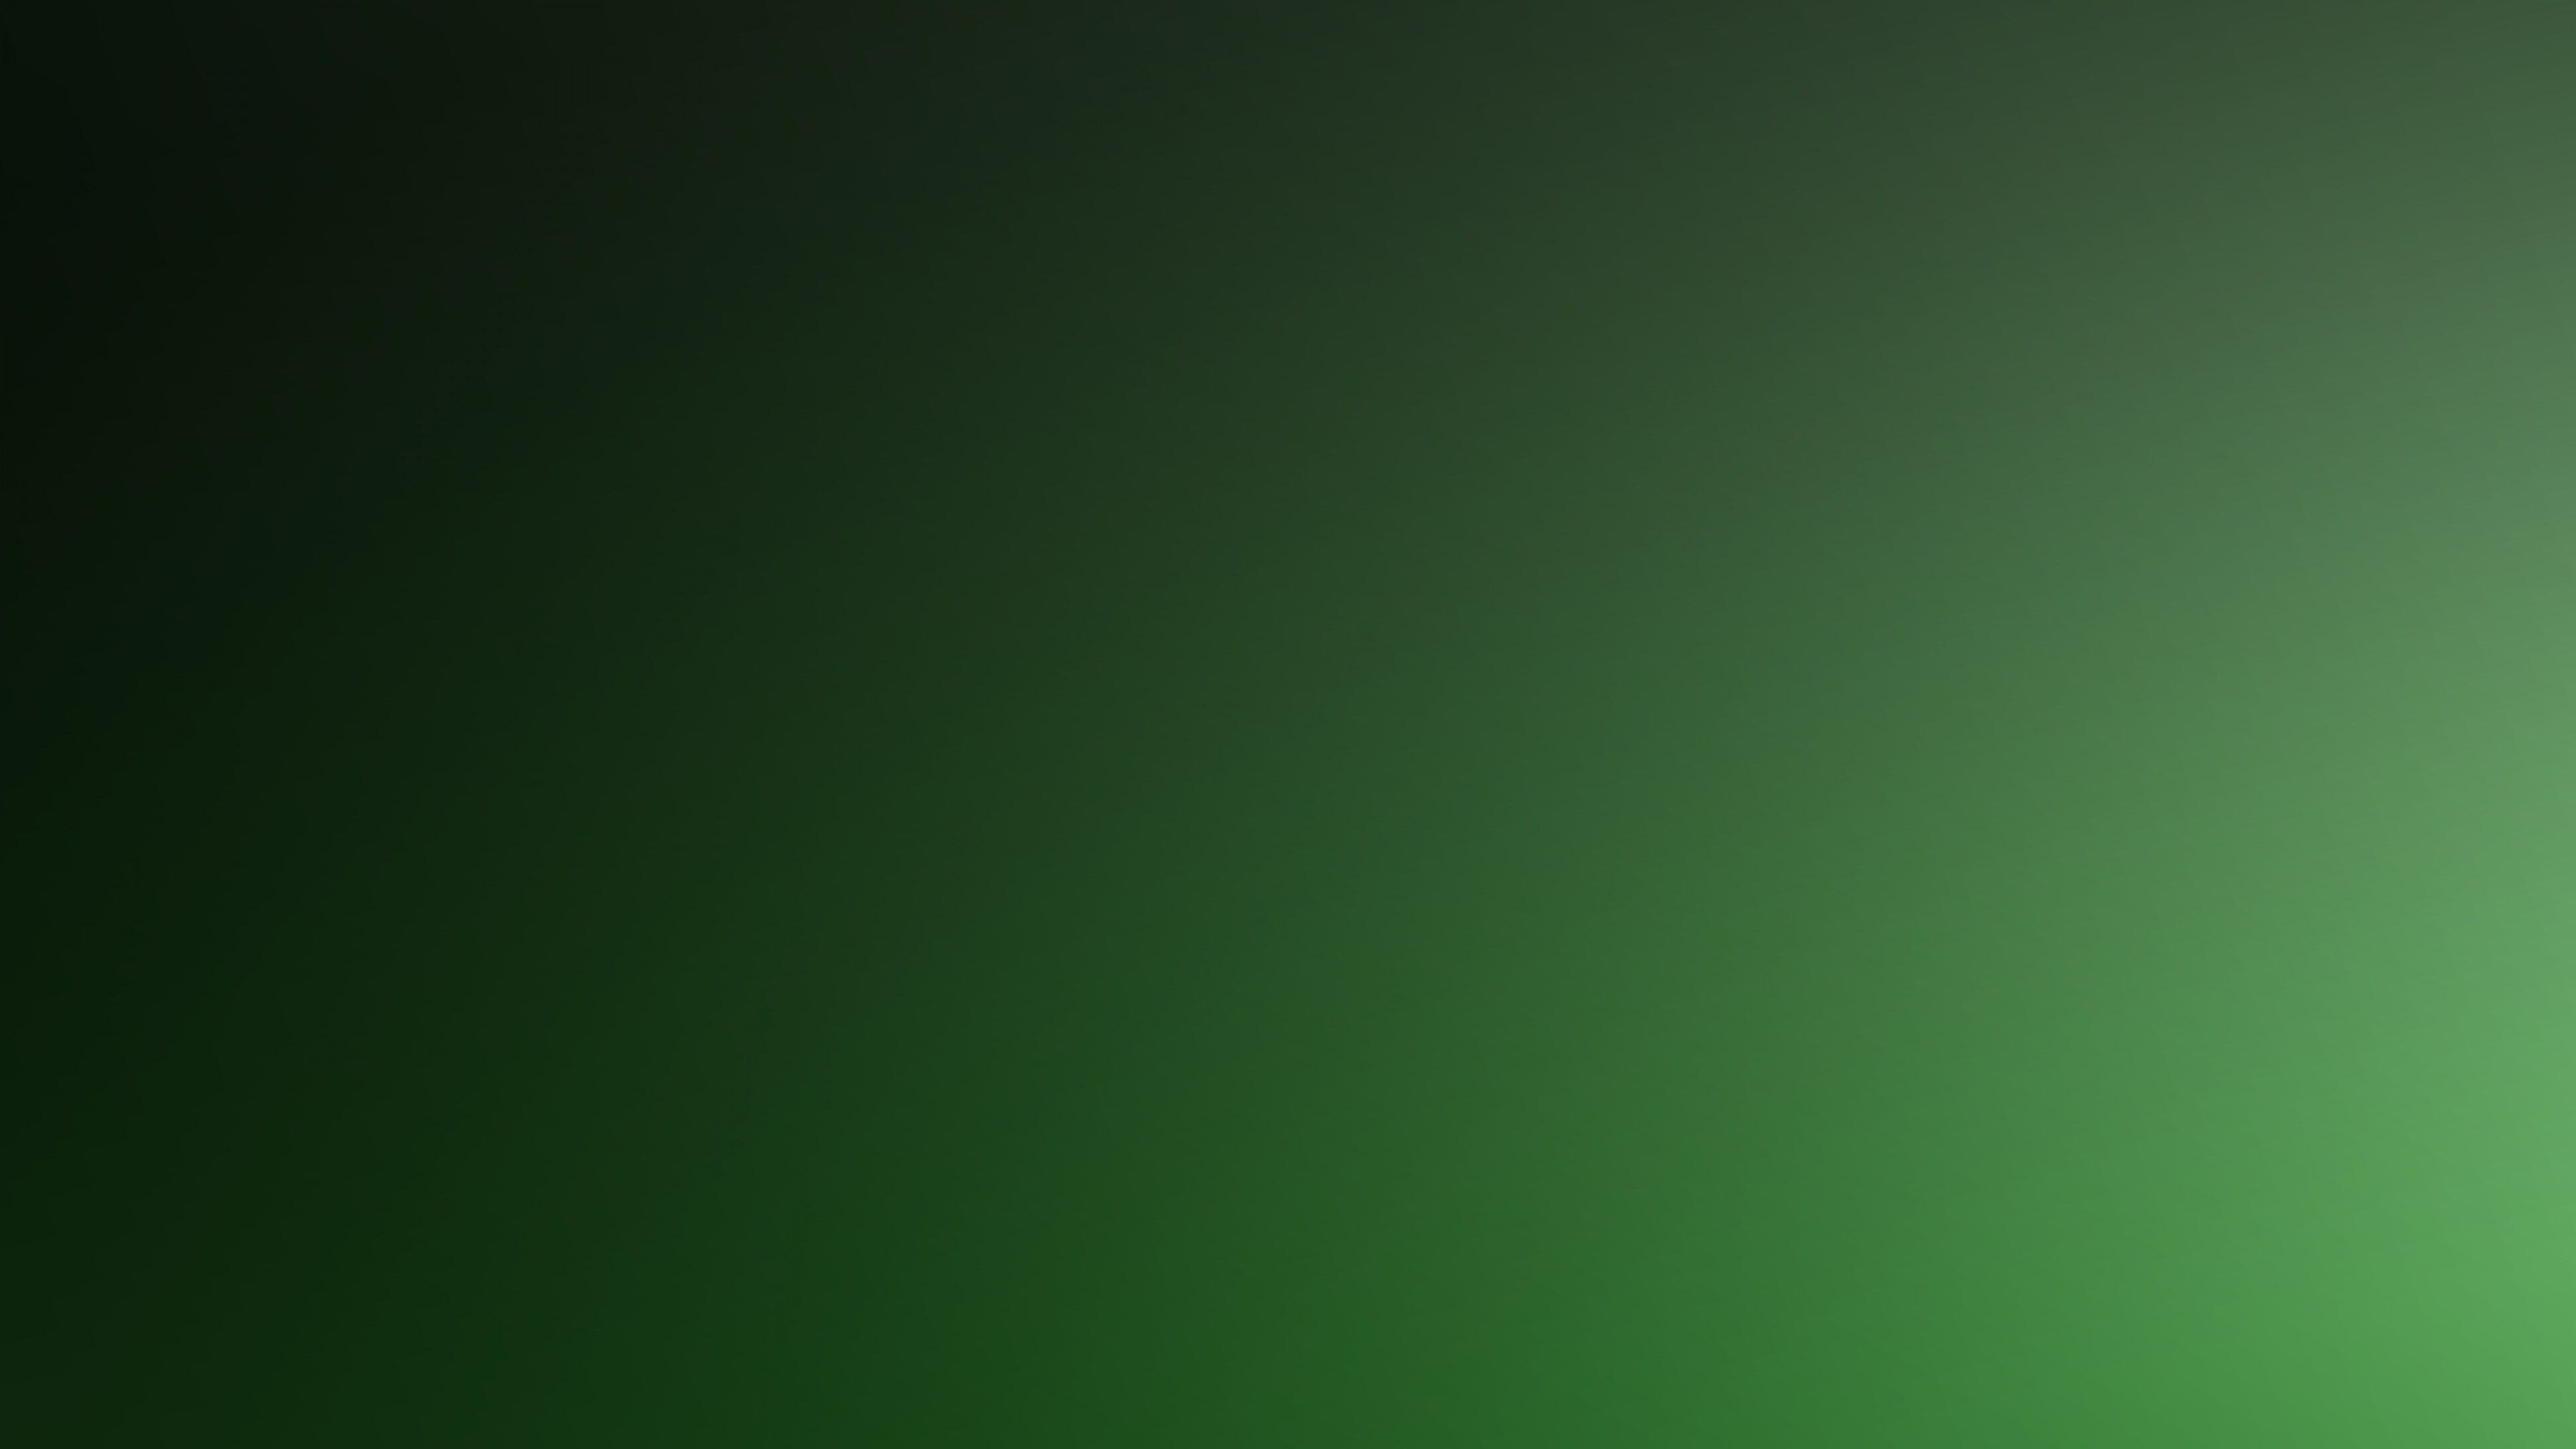 3840x2160  Wallpaper green, background, texture, solid, color